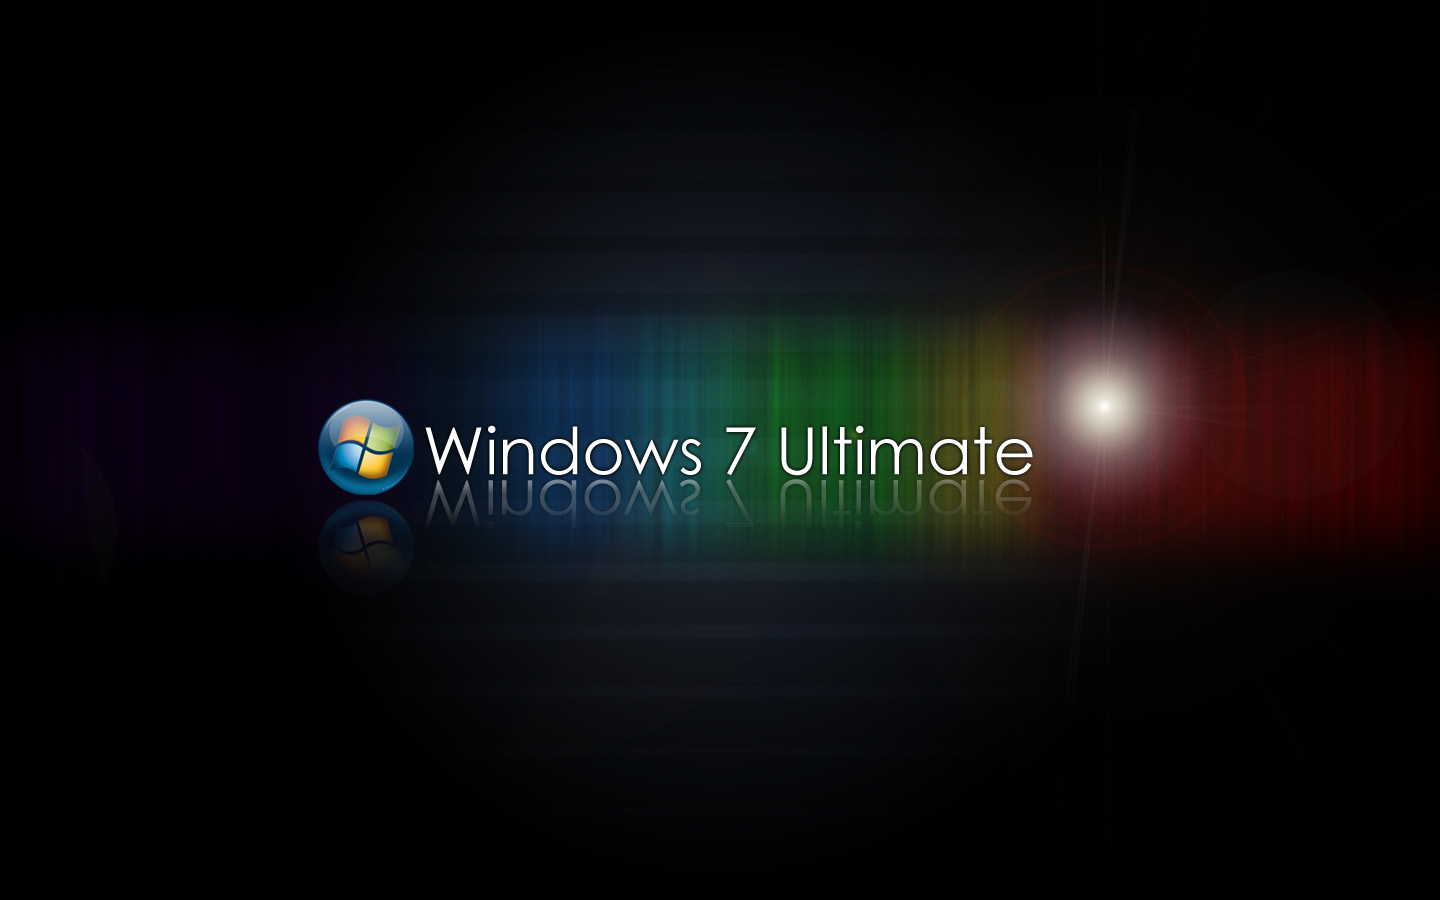 Windows 7 Ultimate Драйвера